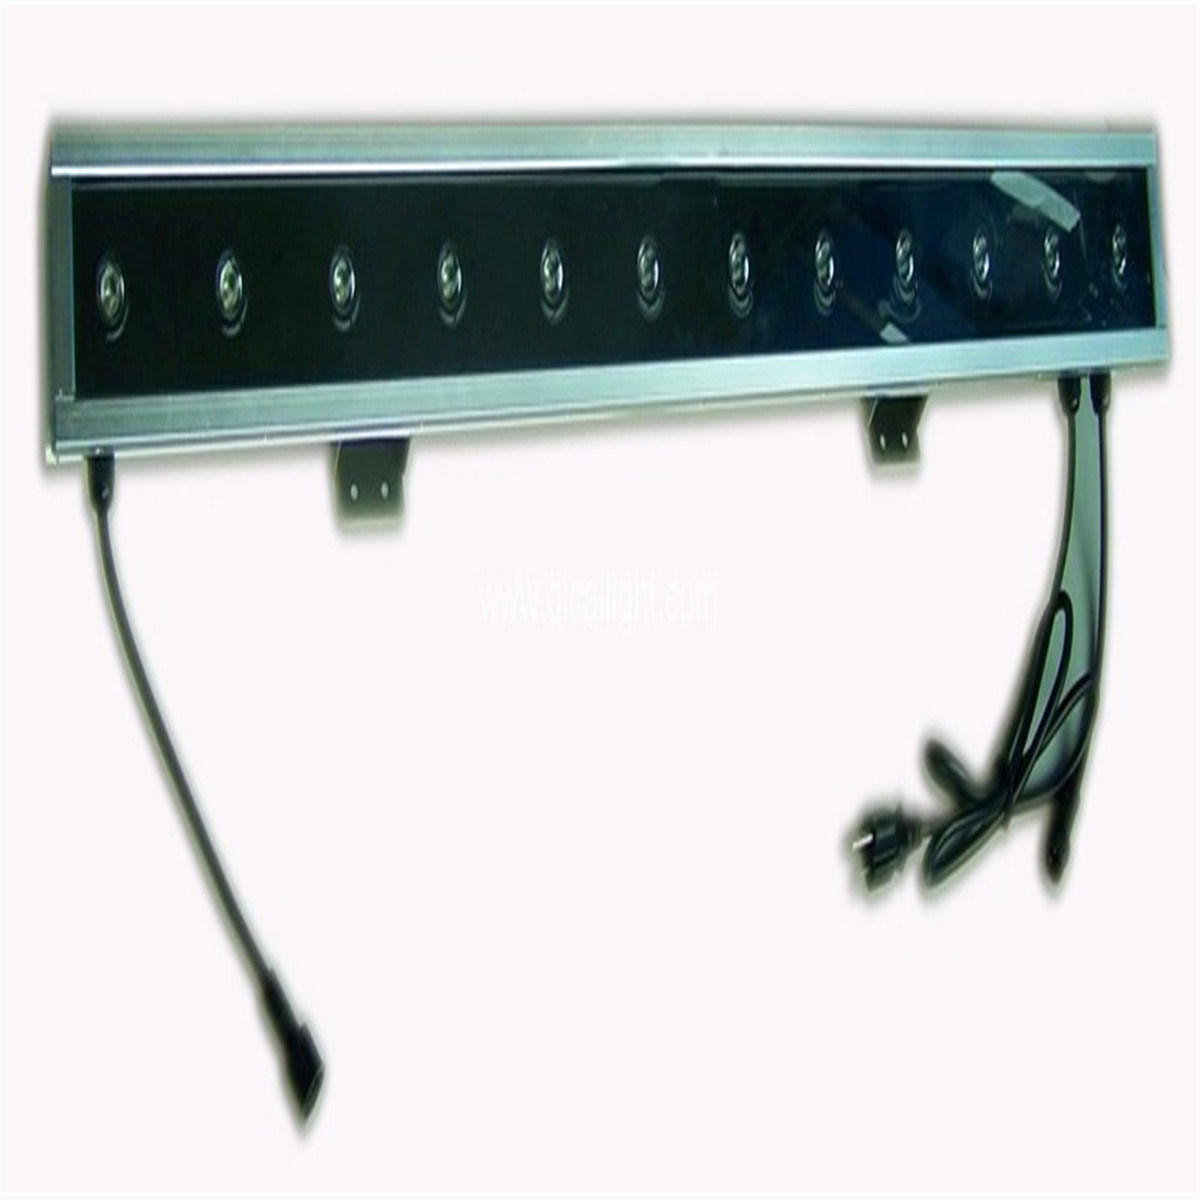 0.5m, Single Color LED Wall Washer, 18LED